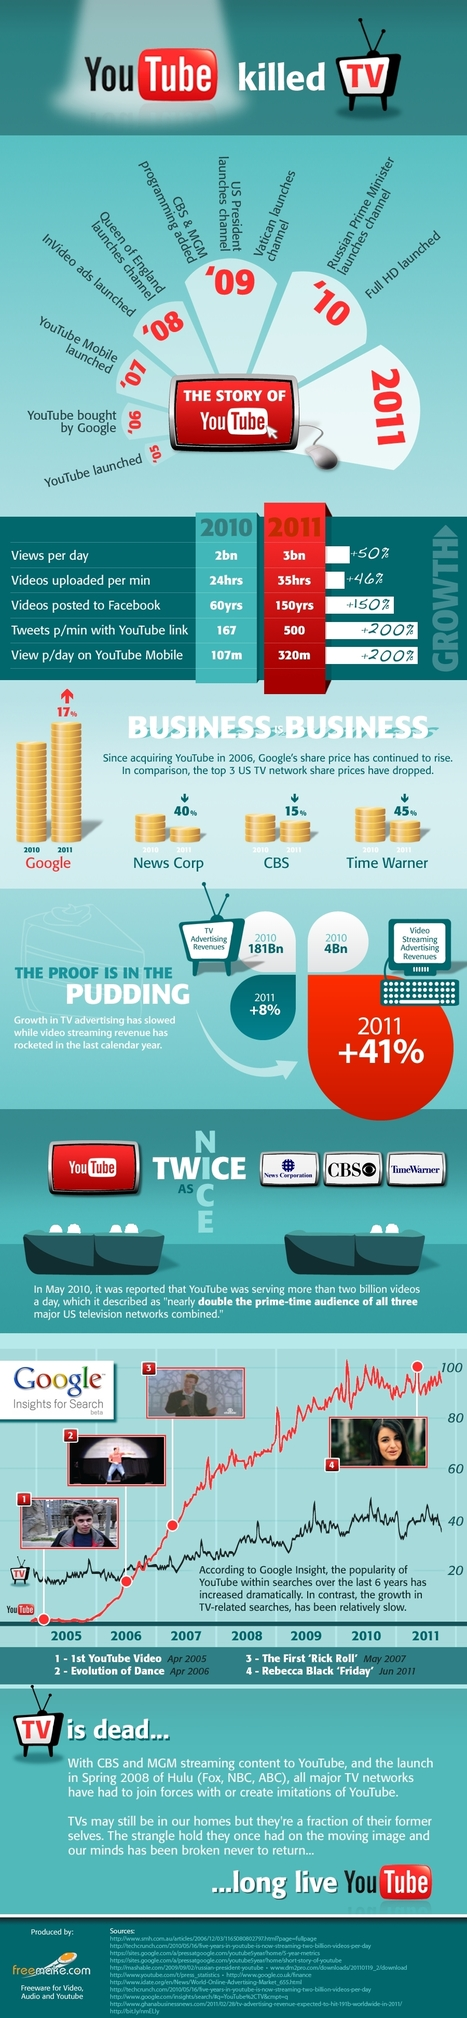 YouTube Killed the TV - Infographic | Bulk Update | Scoop.it